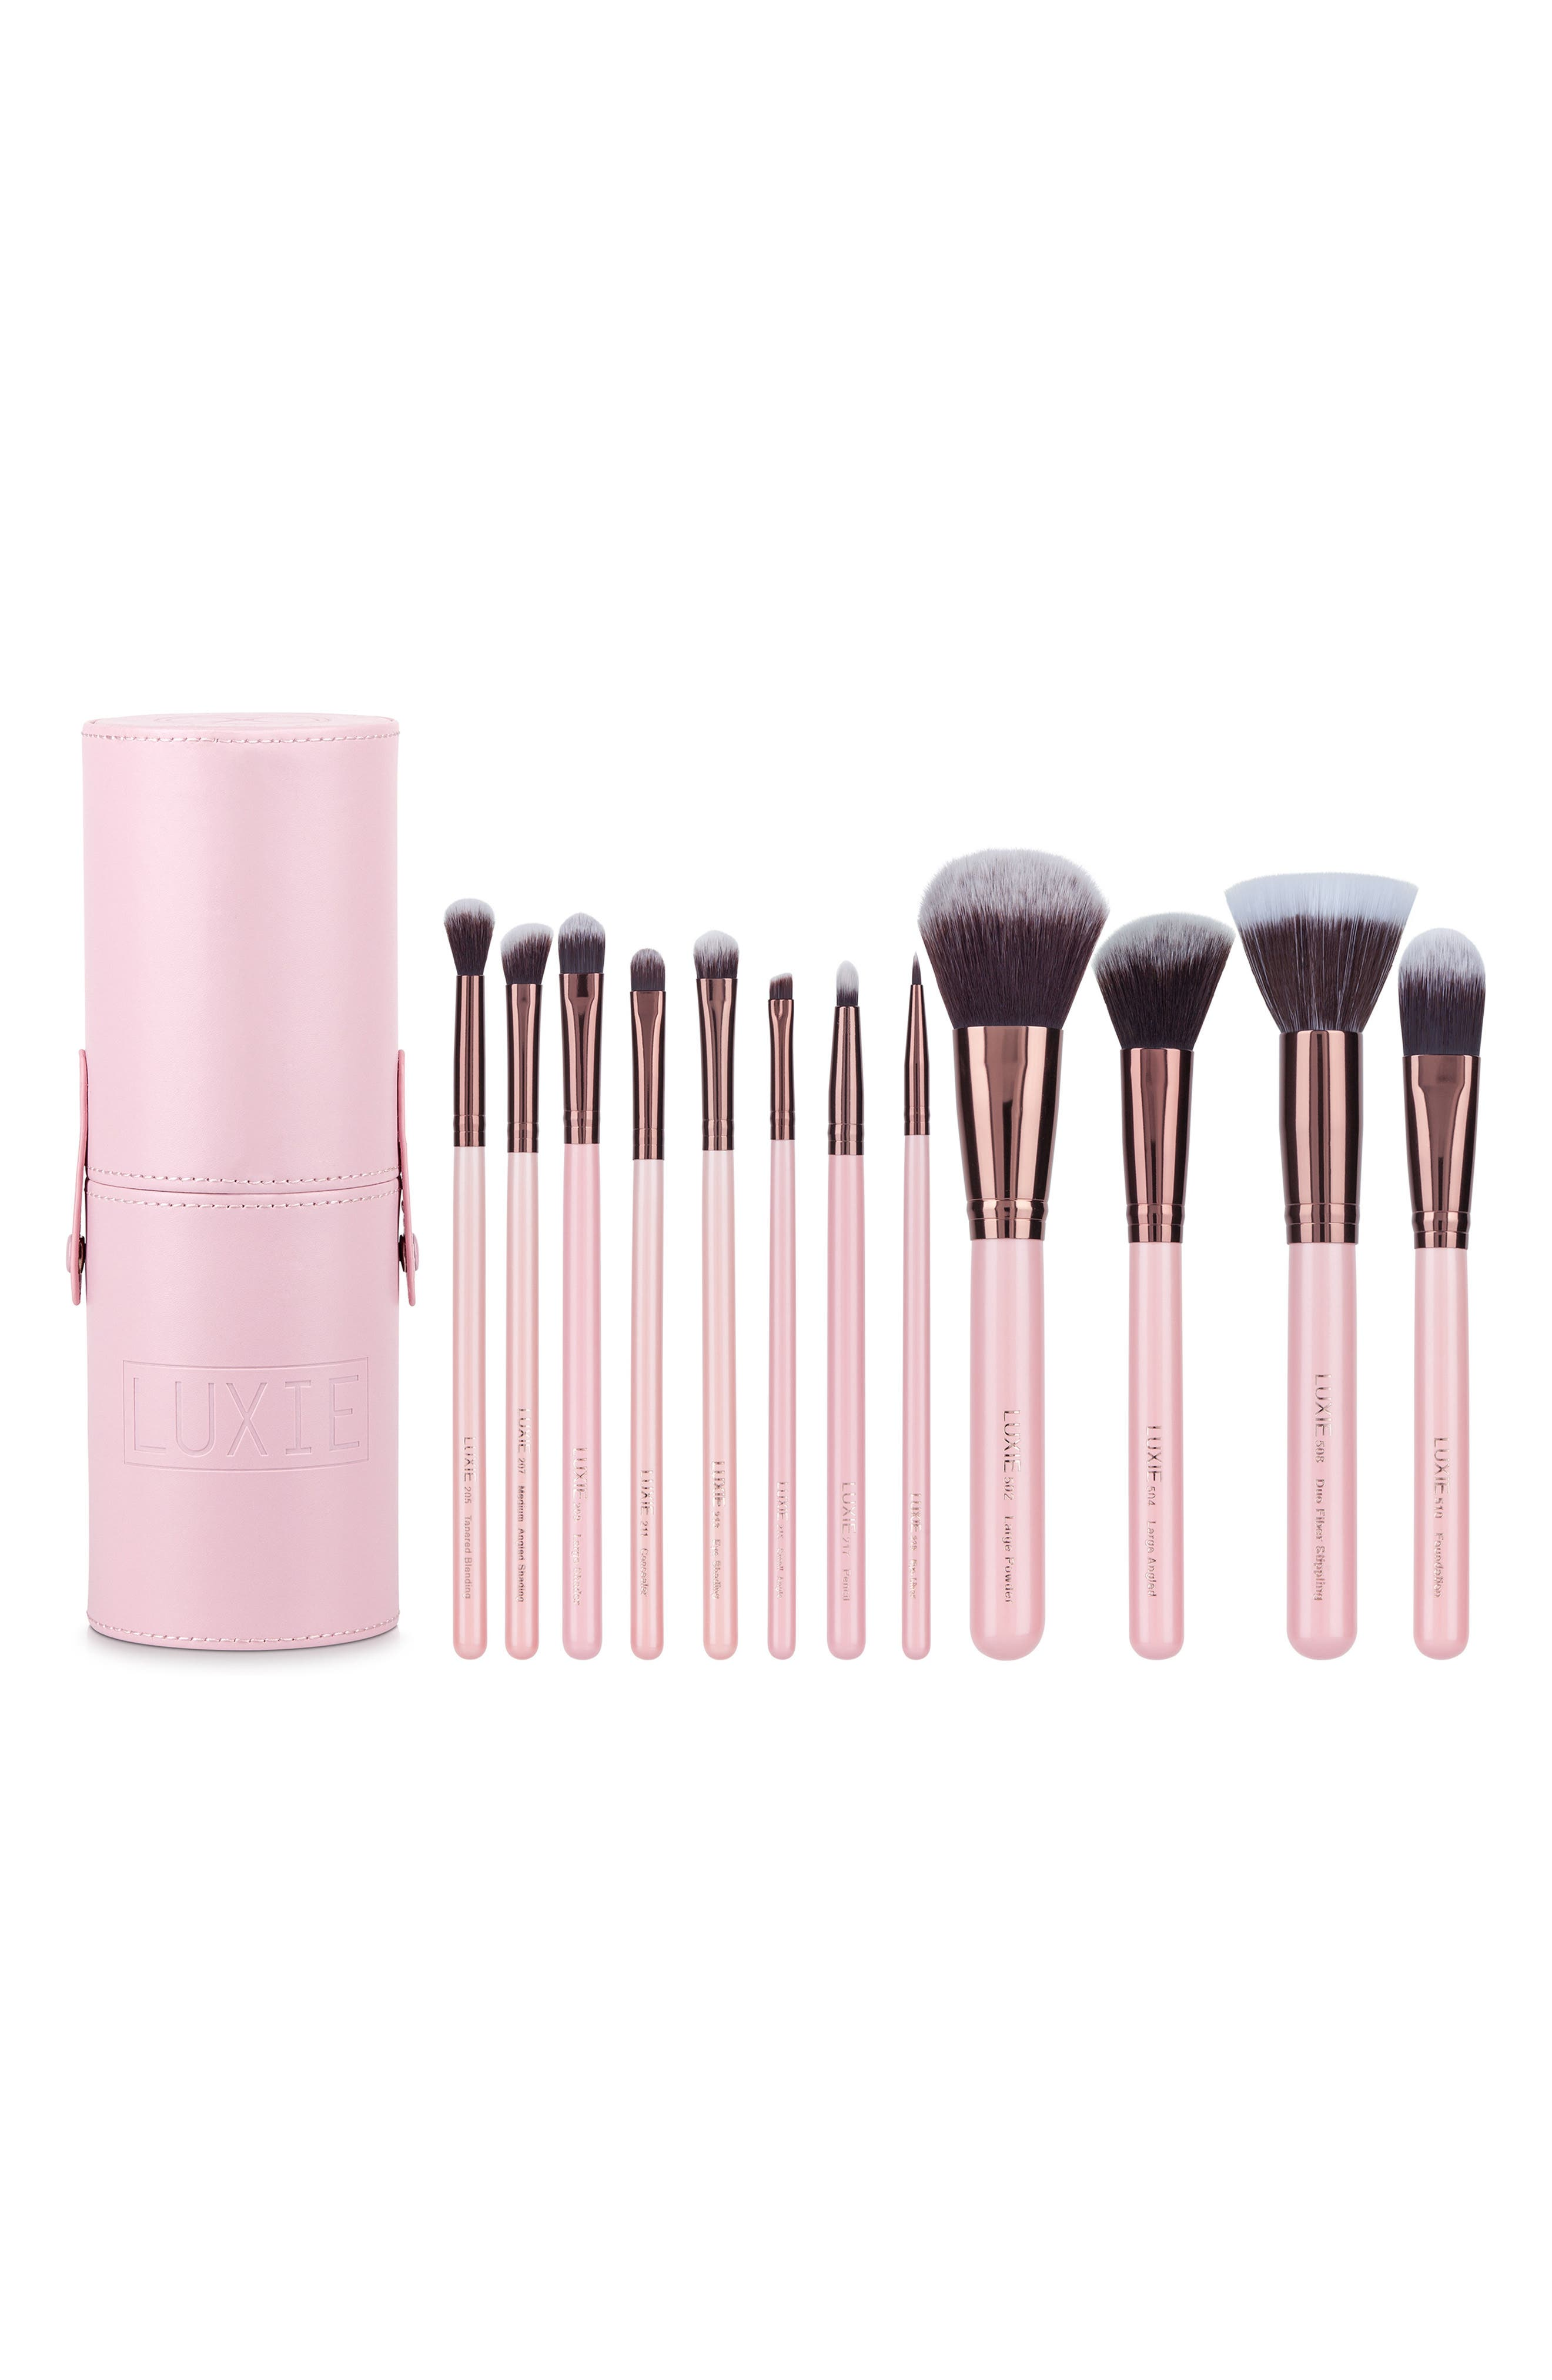 Luxie Rose Gold Brush Collection ($186 Value)